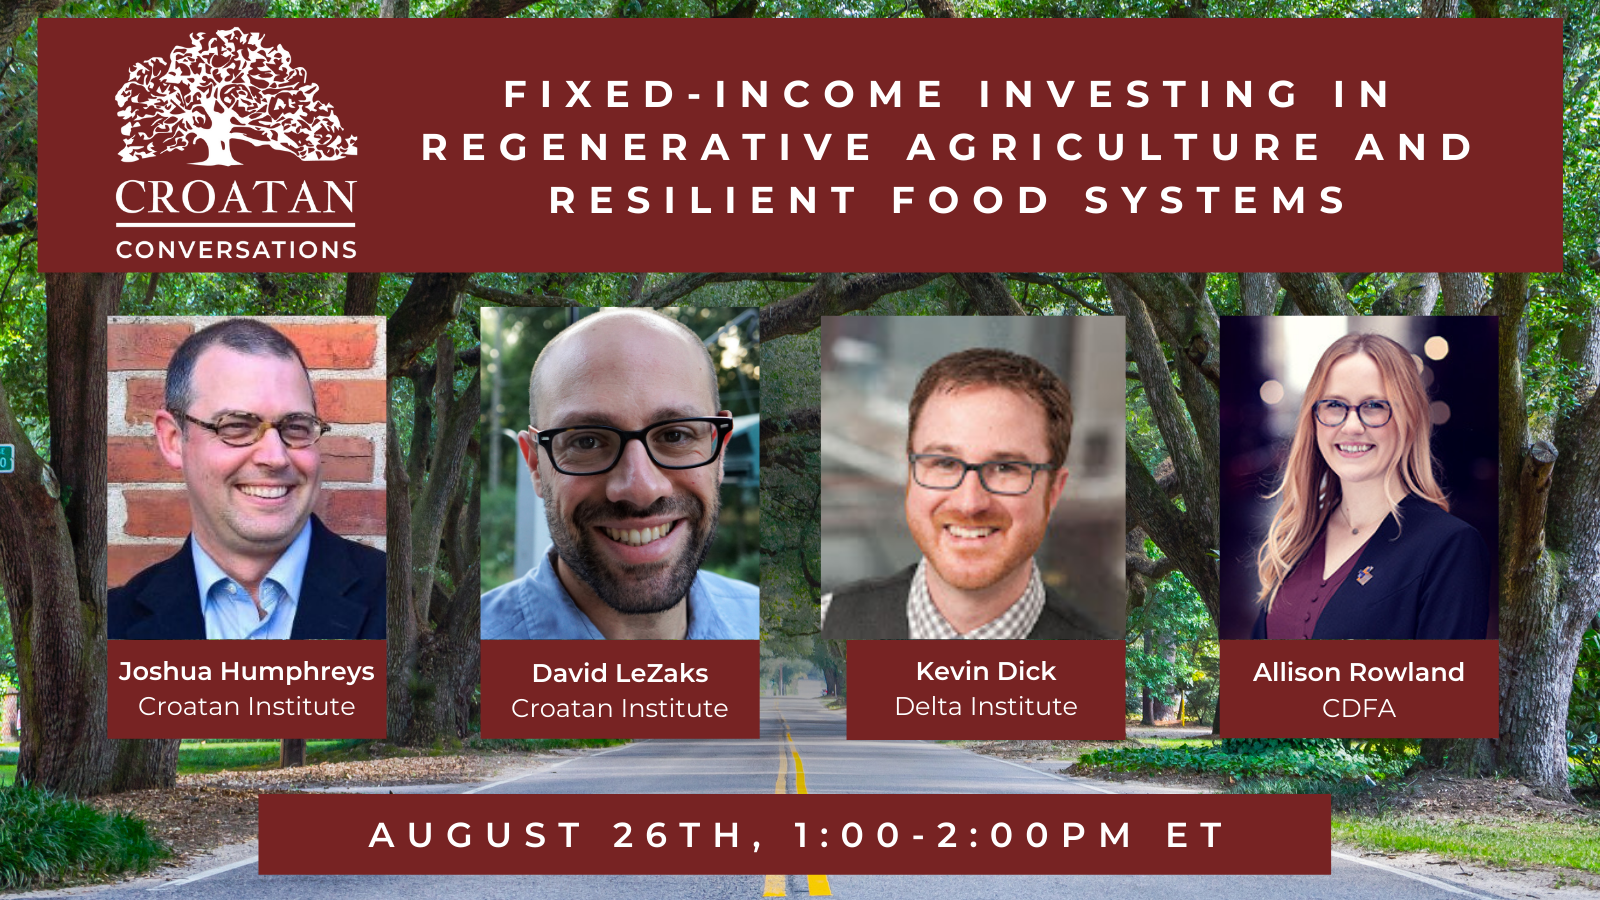 Fixed-Income Investing in Regenerative Agriculture and Resilient Food Systems